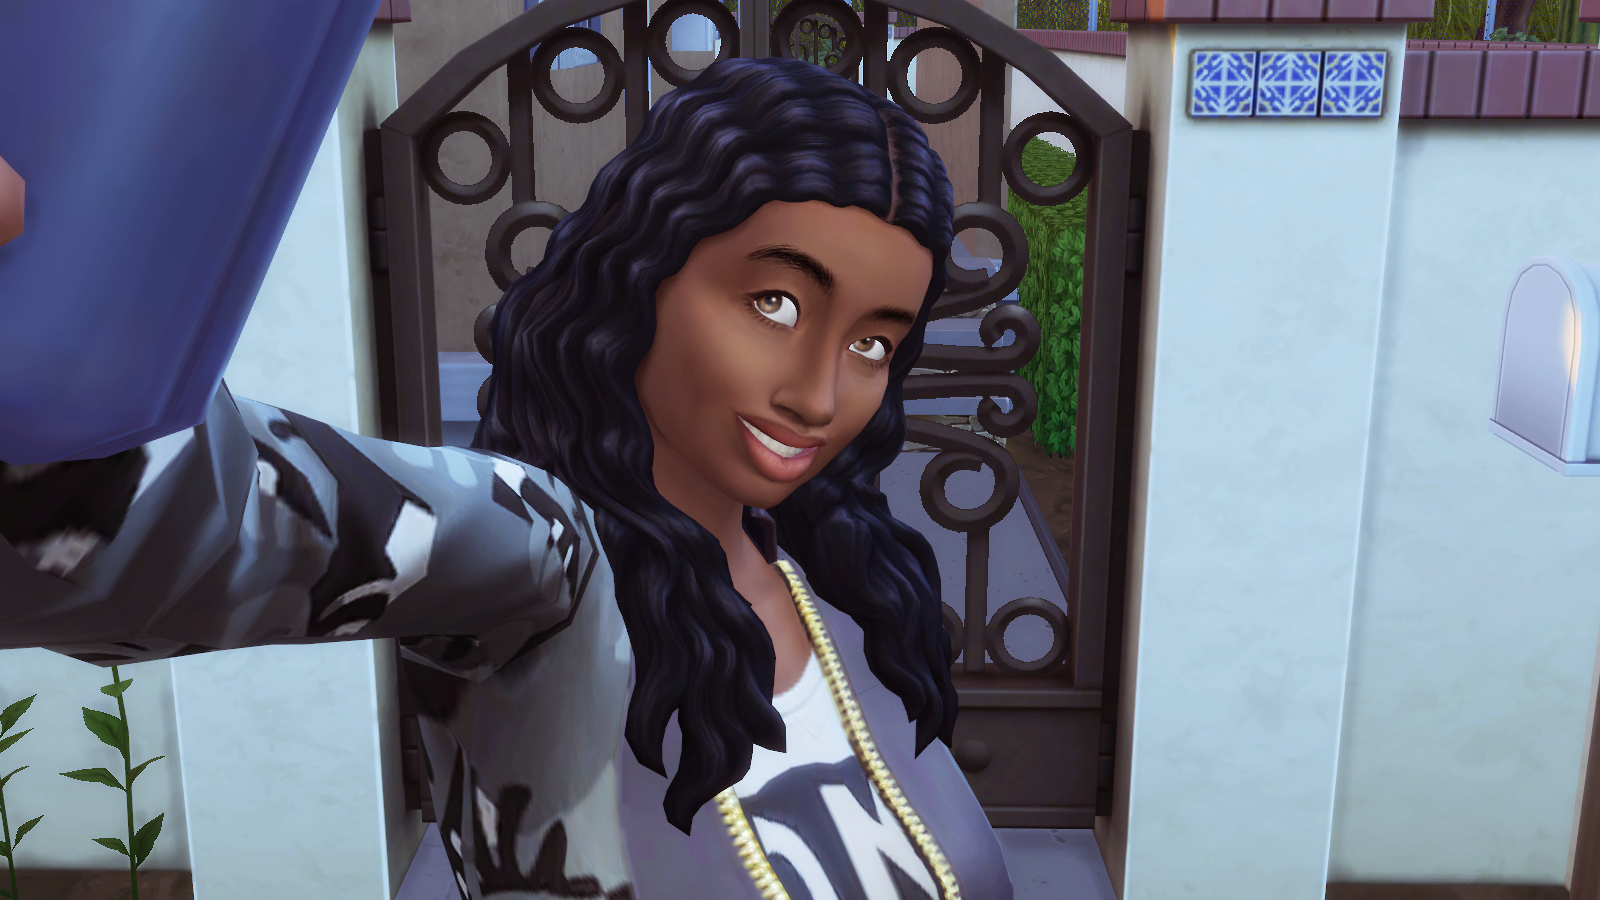 My Sims Love Affair — The next thing I know…I'm in front of